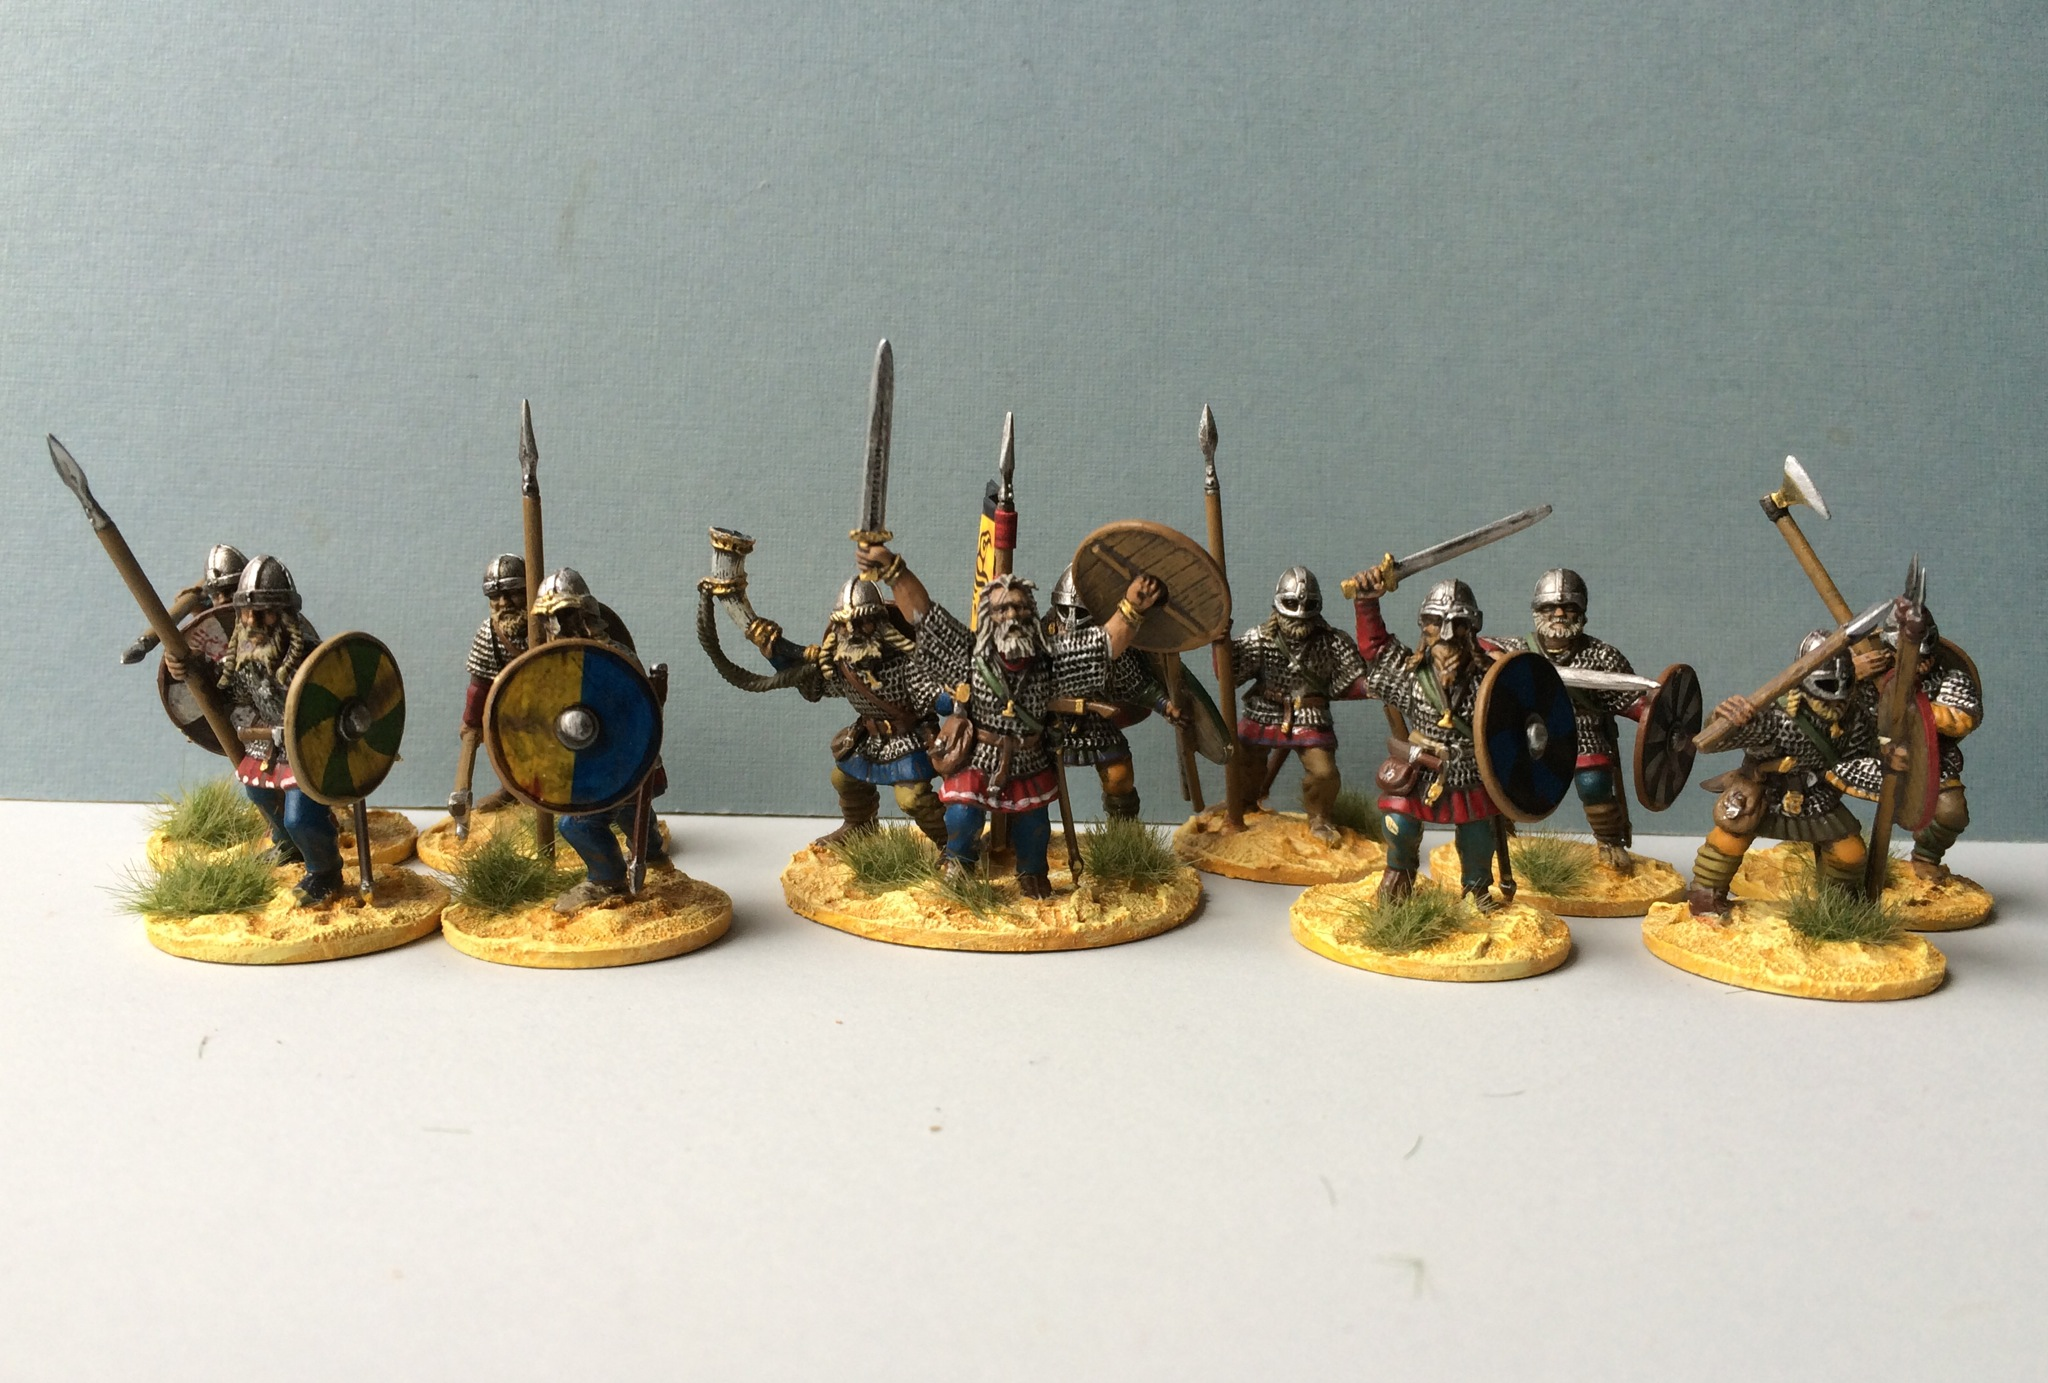 The warlord and his hearthguard